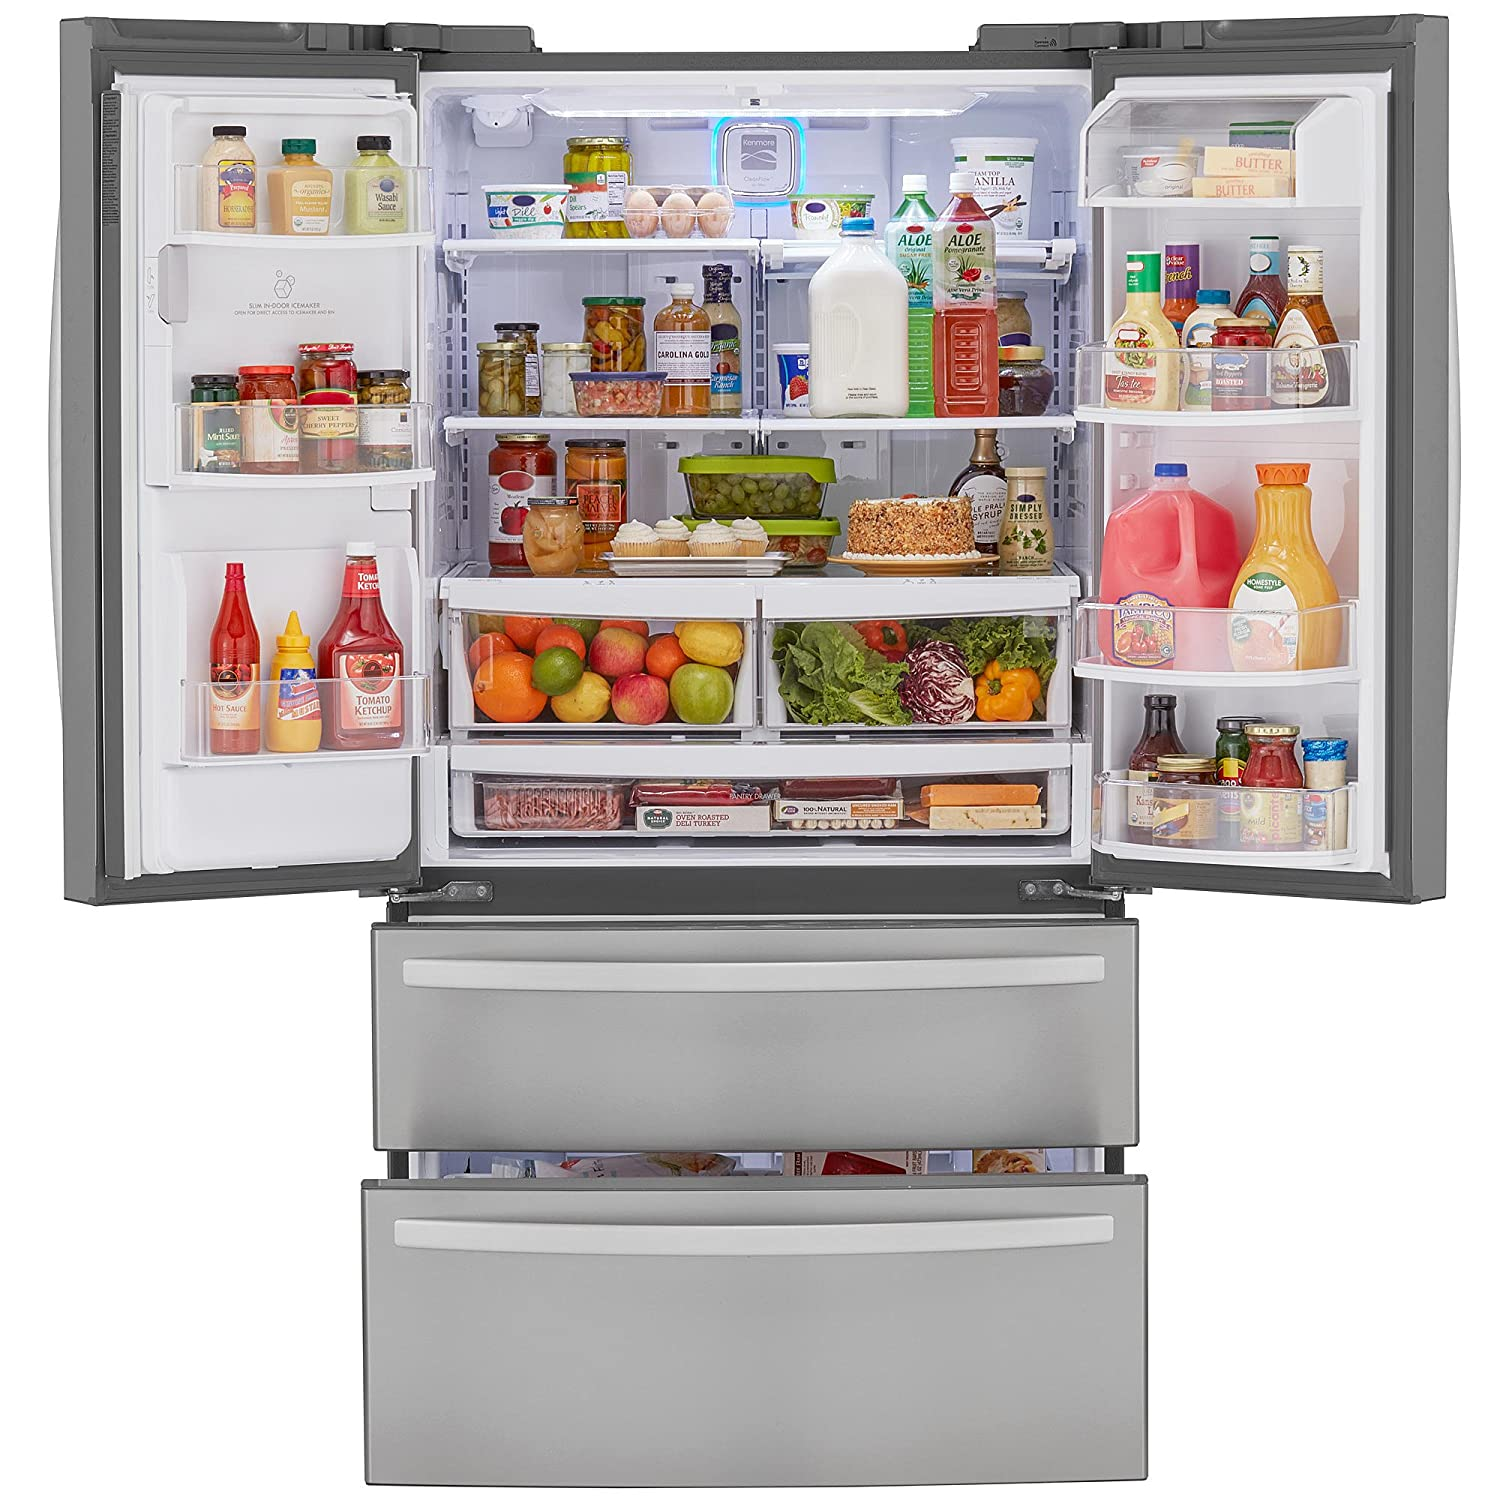 Refrigerator Options Amazoncom Kenmore 72495 267 Cu Ft 4 Door French Door